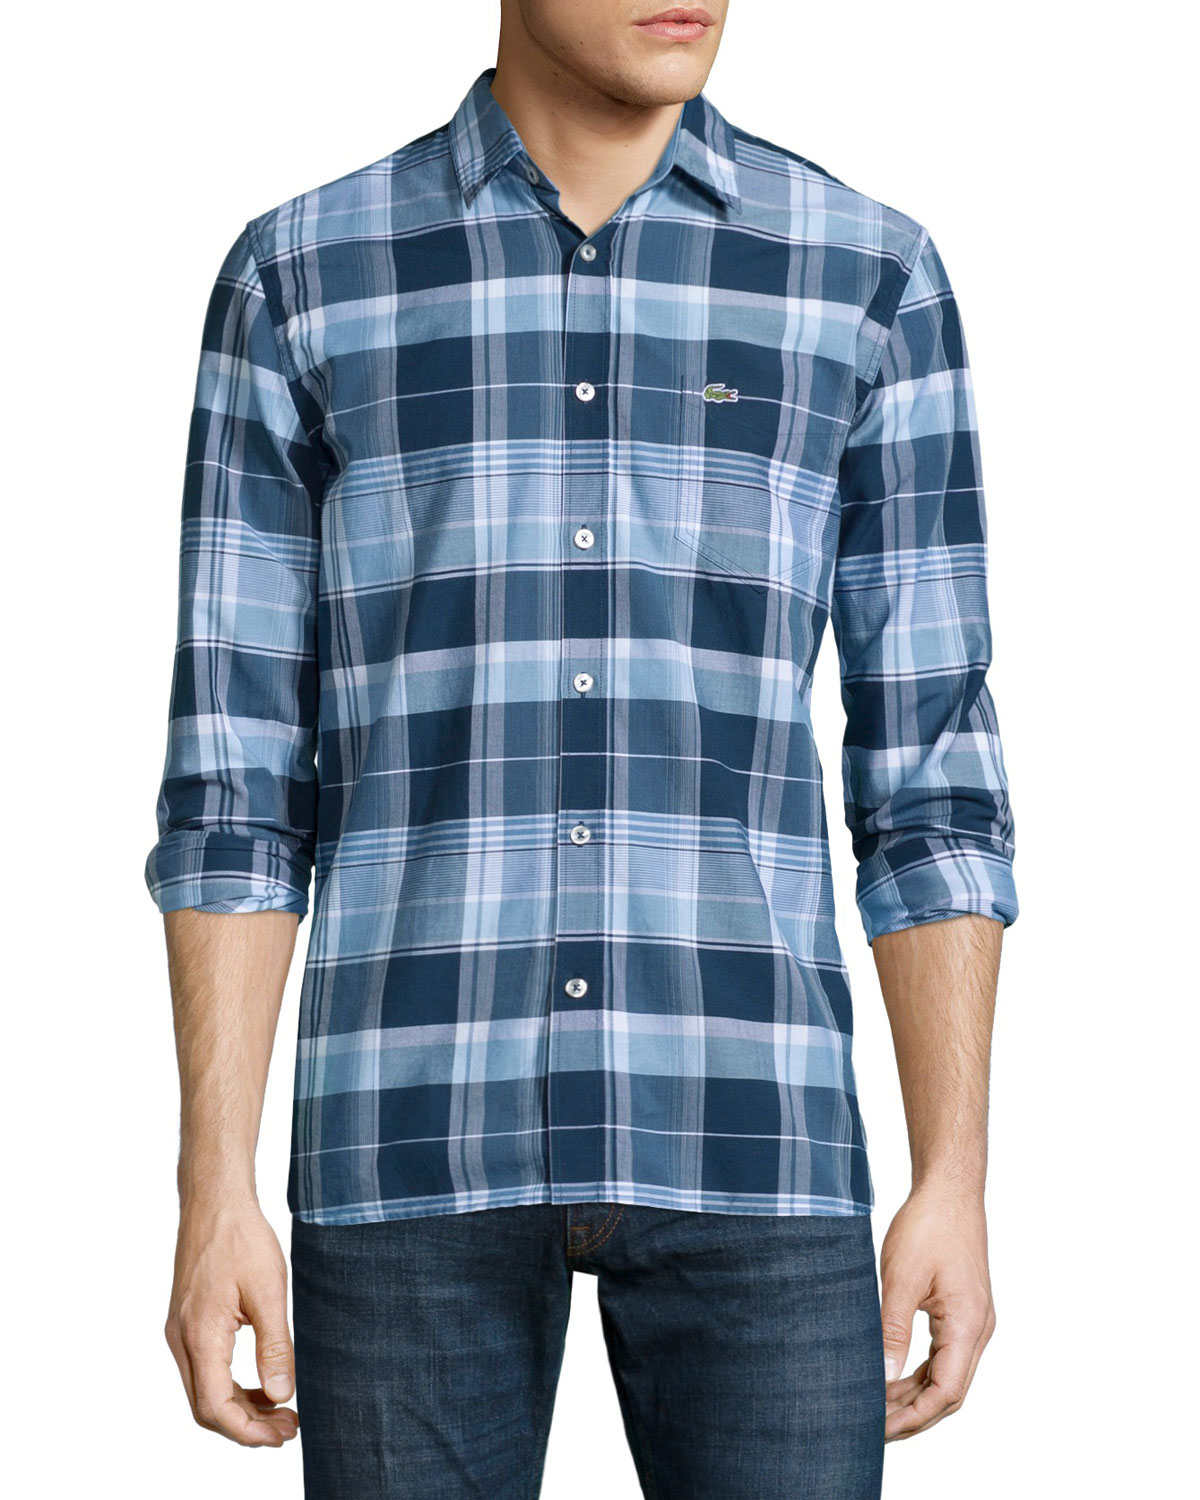 Men's Plaid Shirts. Showing 26 of 26 results that match your query. Search Product Result. Product - Vineyard Vines Men's Poinsetta Plaid Check Cotton Tie in Blue $ Product Image. Price $ Product Title. Product - Augusta Sportswear Men's Wicking Long Sleeve T-Shirt, Style Product Image. Price $